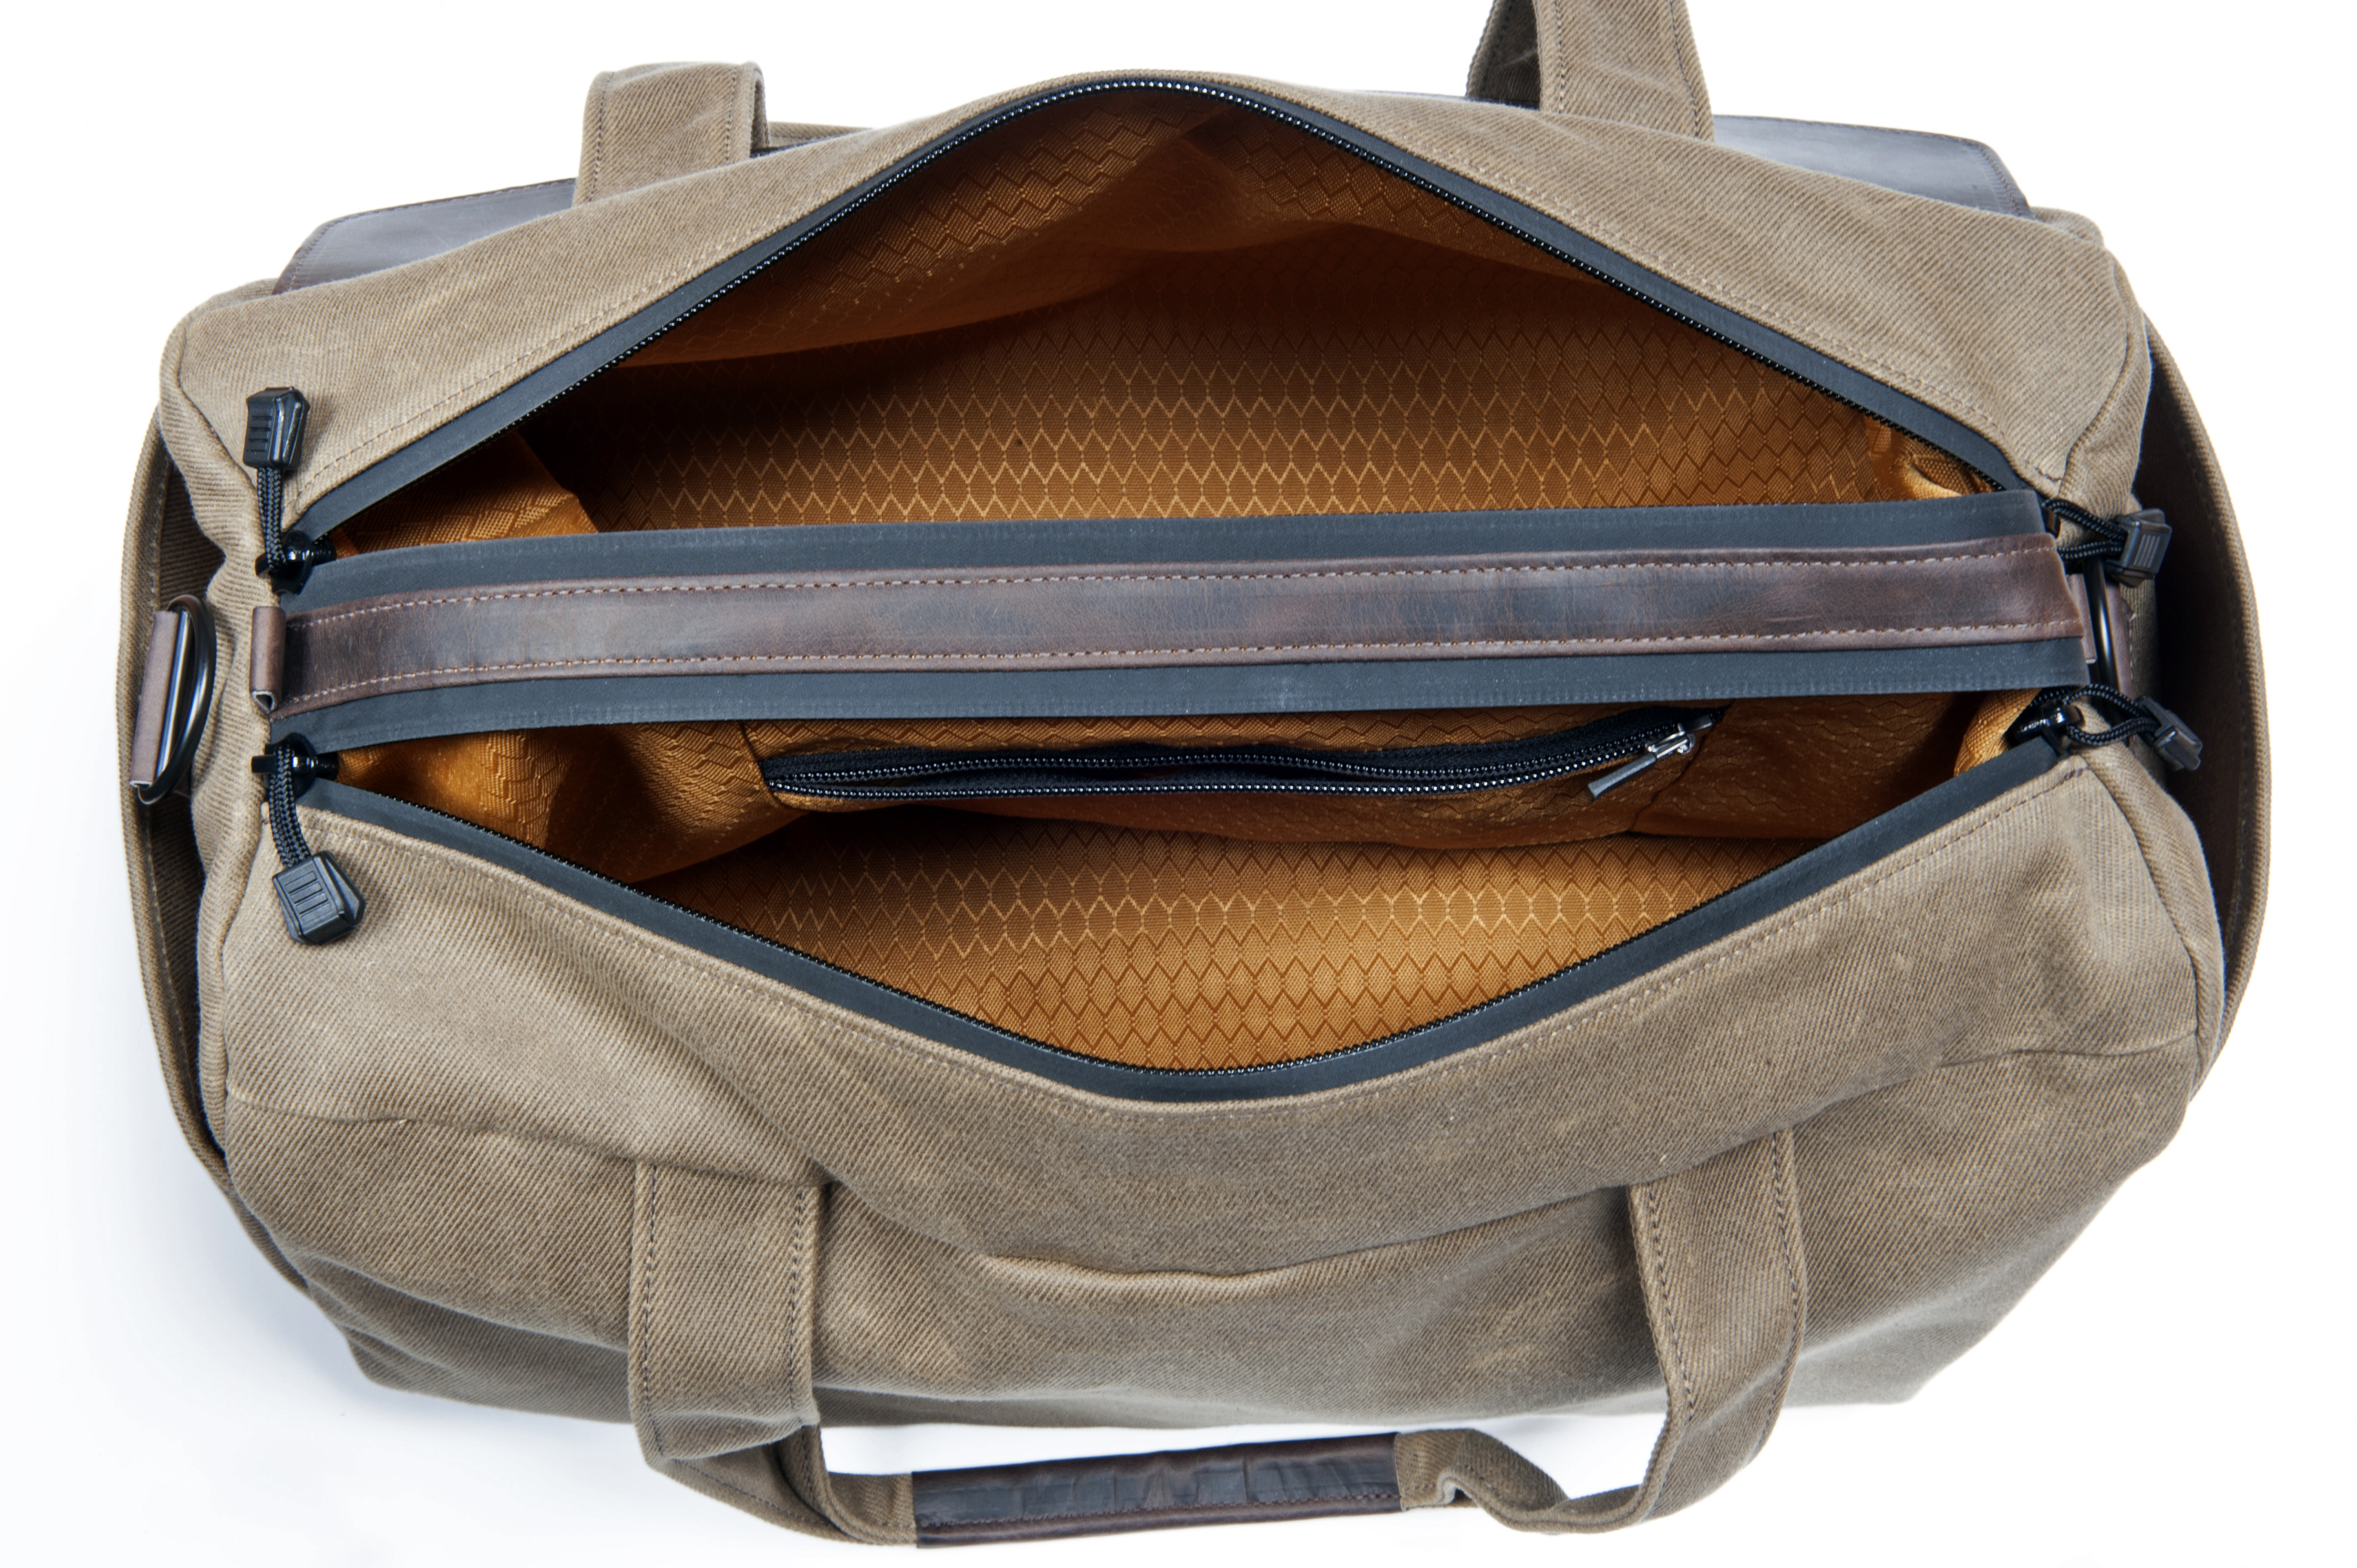 The Outback Duffel Dual Main Compartment Option